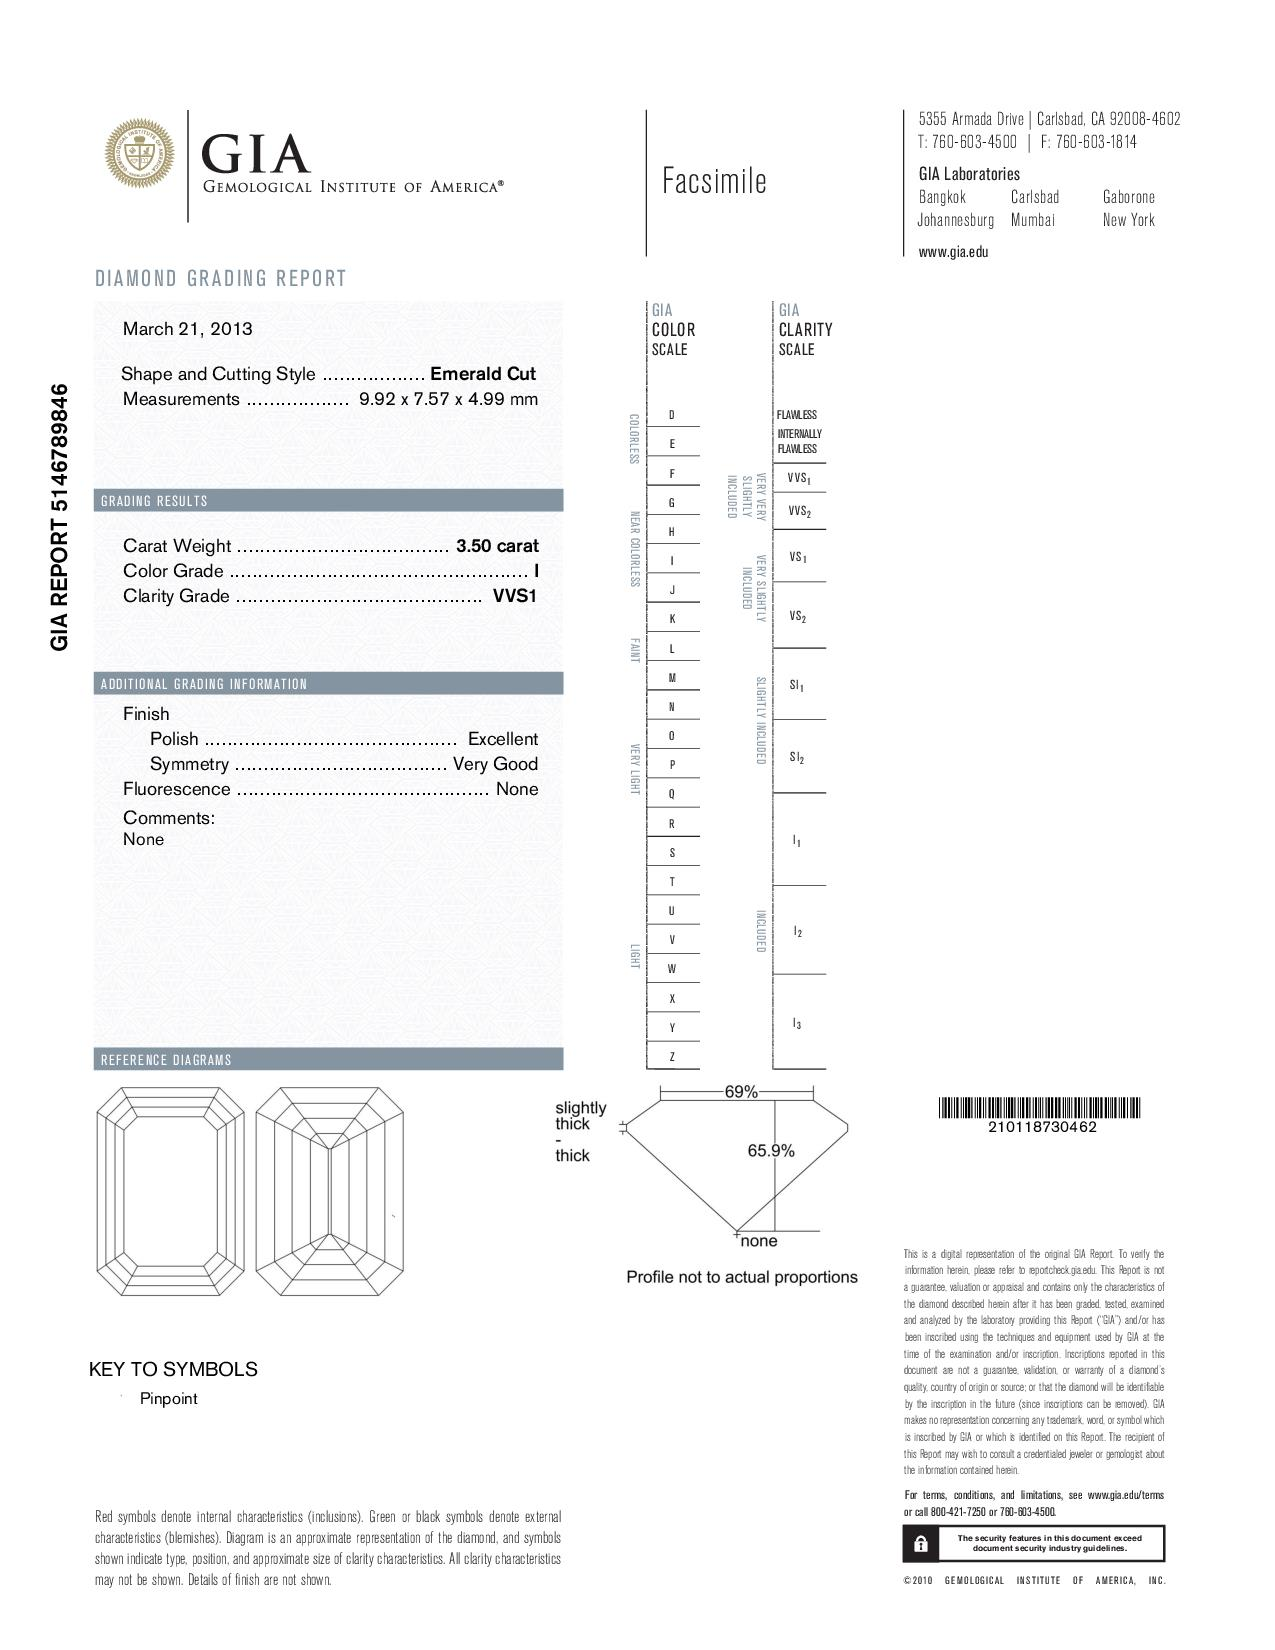 This is a 3.50 carat emerald shape, I color, VVS1 clarity natural diamond accompanied by a GIA grading report.